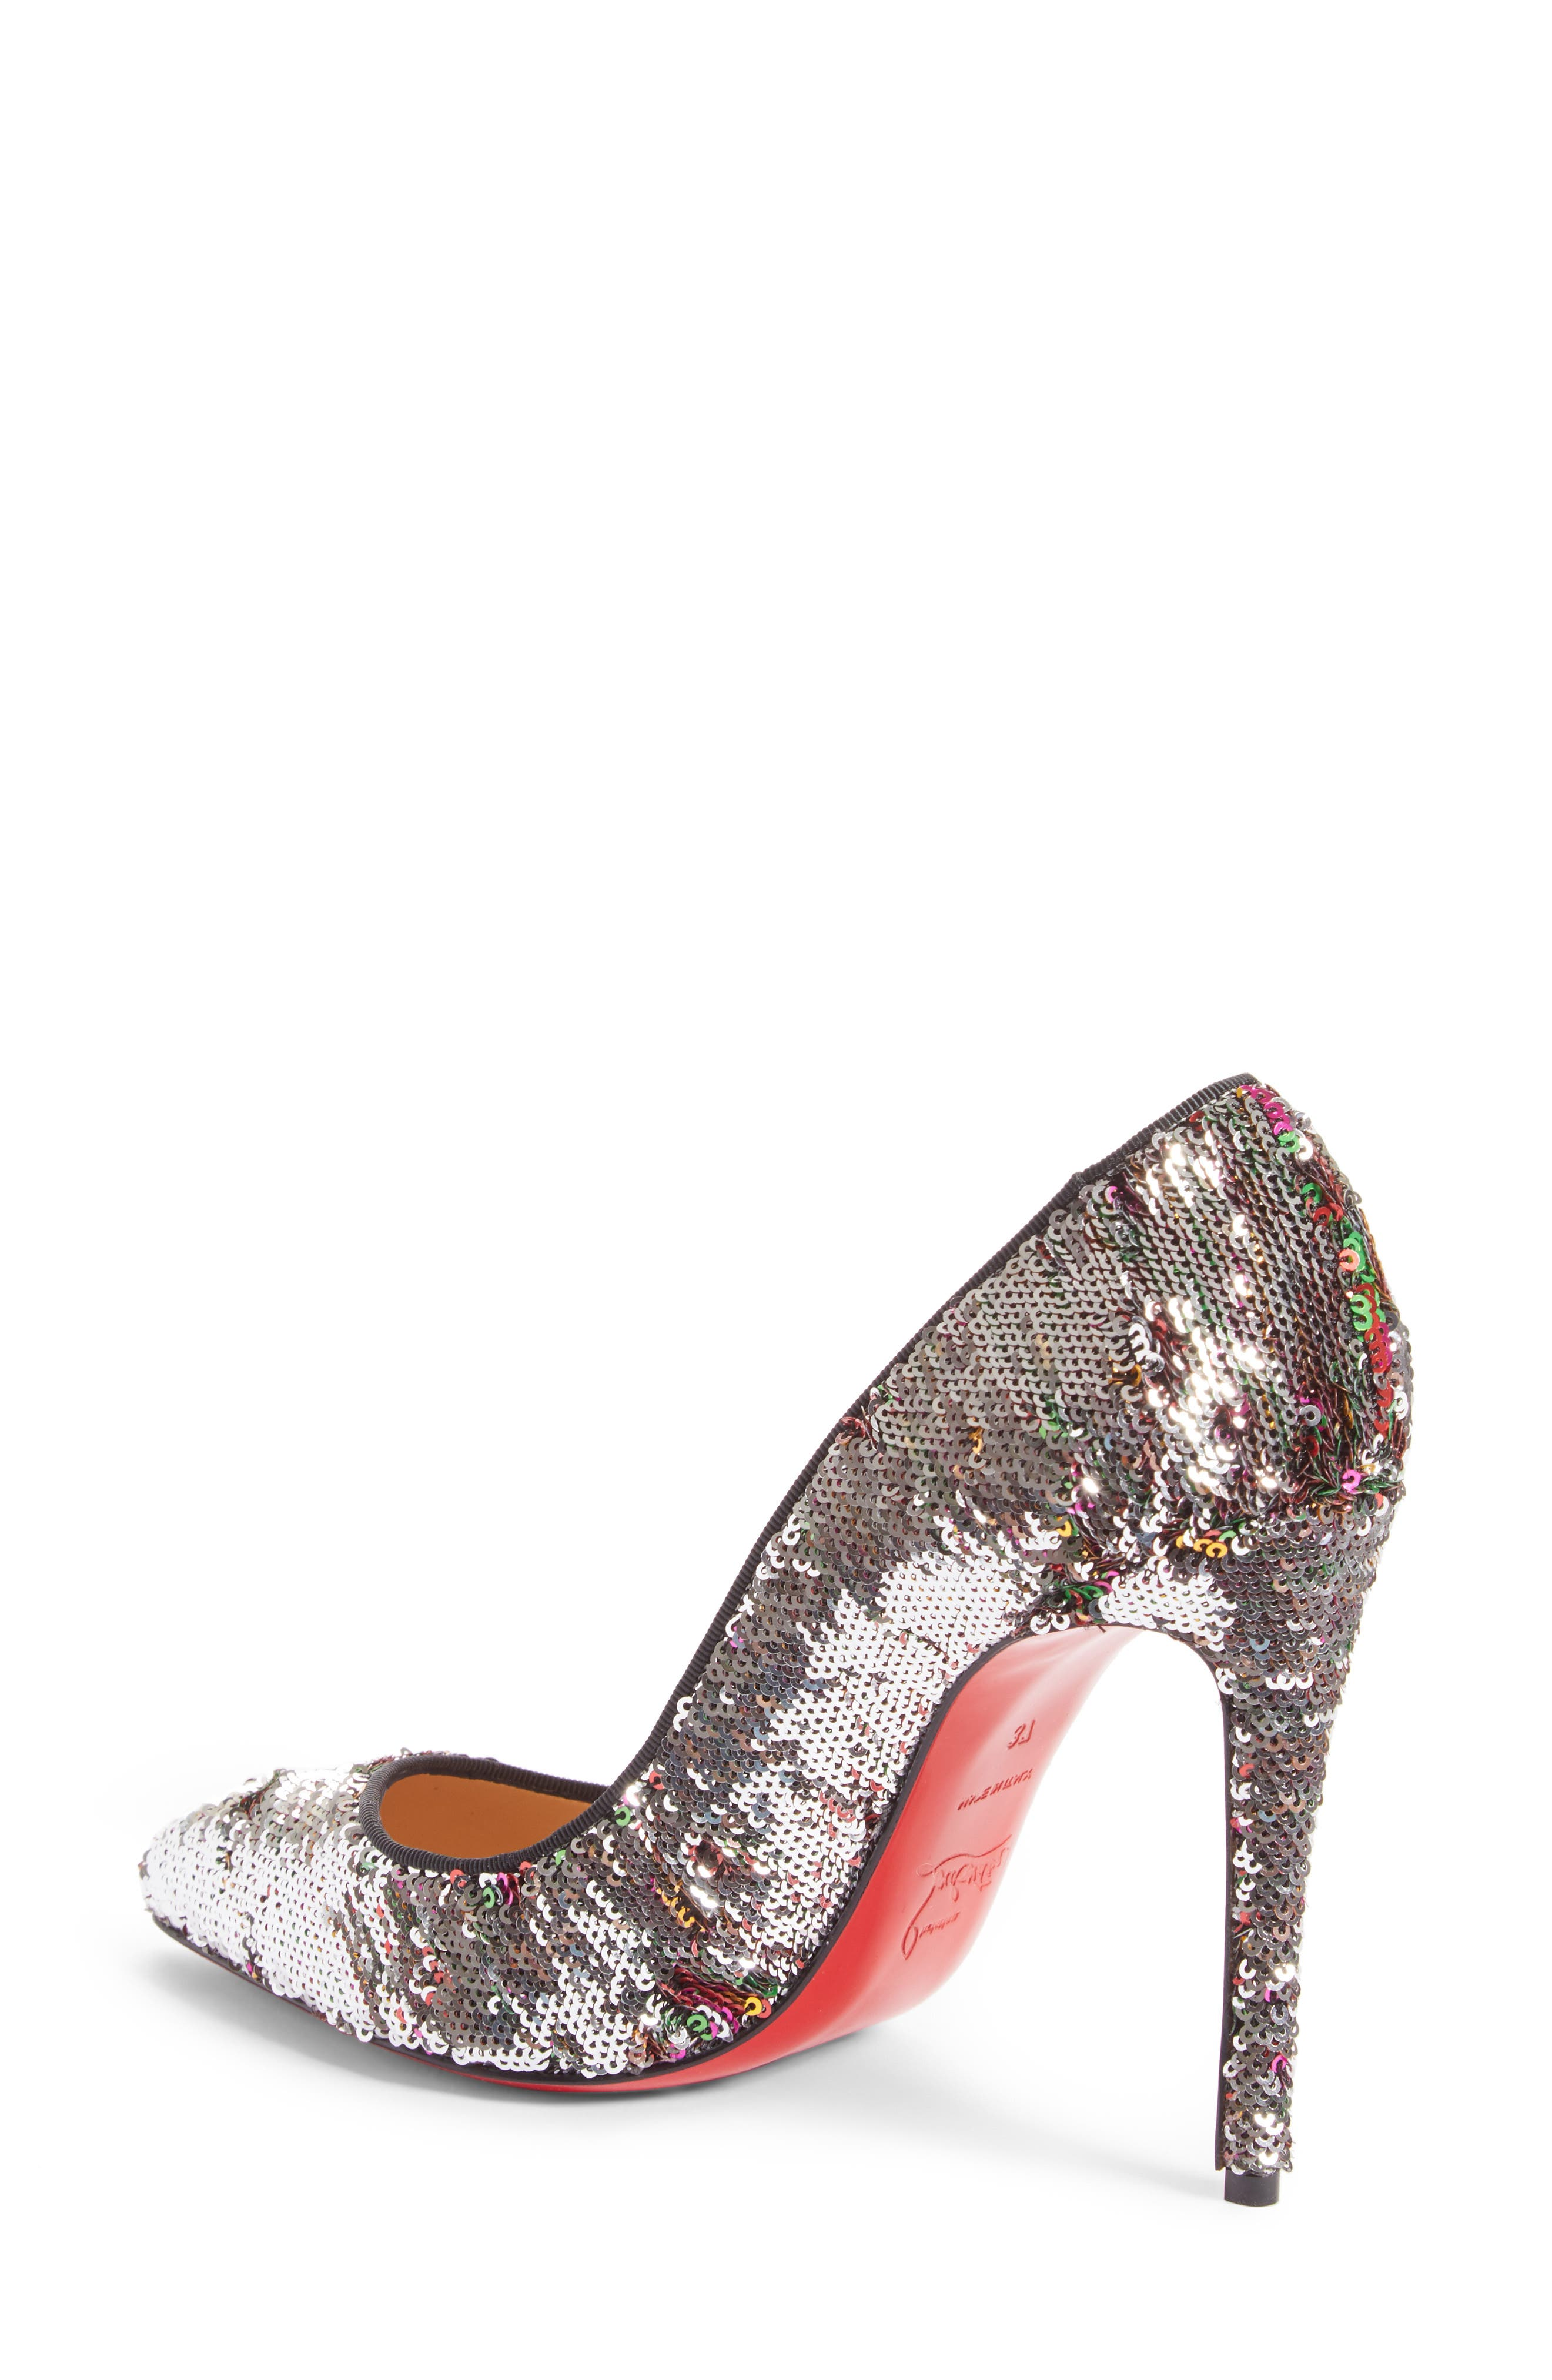 Pigalle Follies Sequin Pointy Toe Pump,                             Alternate thumbnail 2, color,                             040